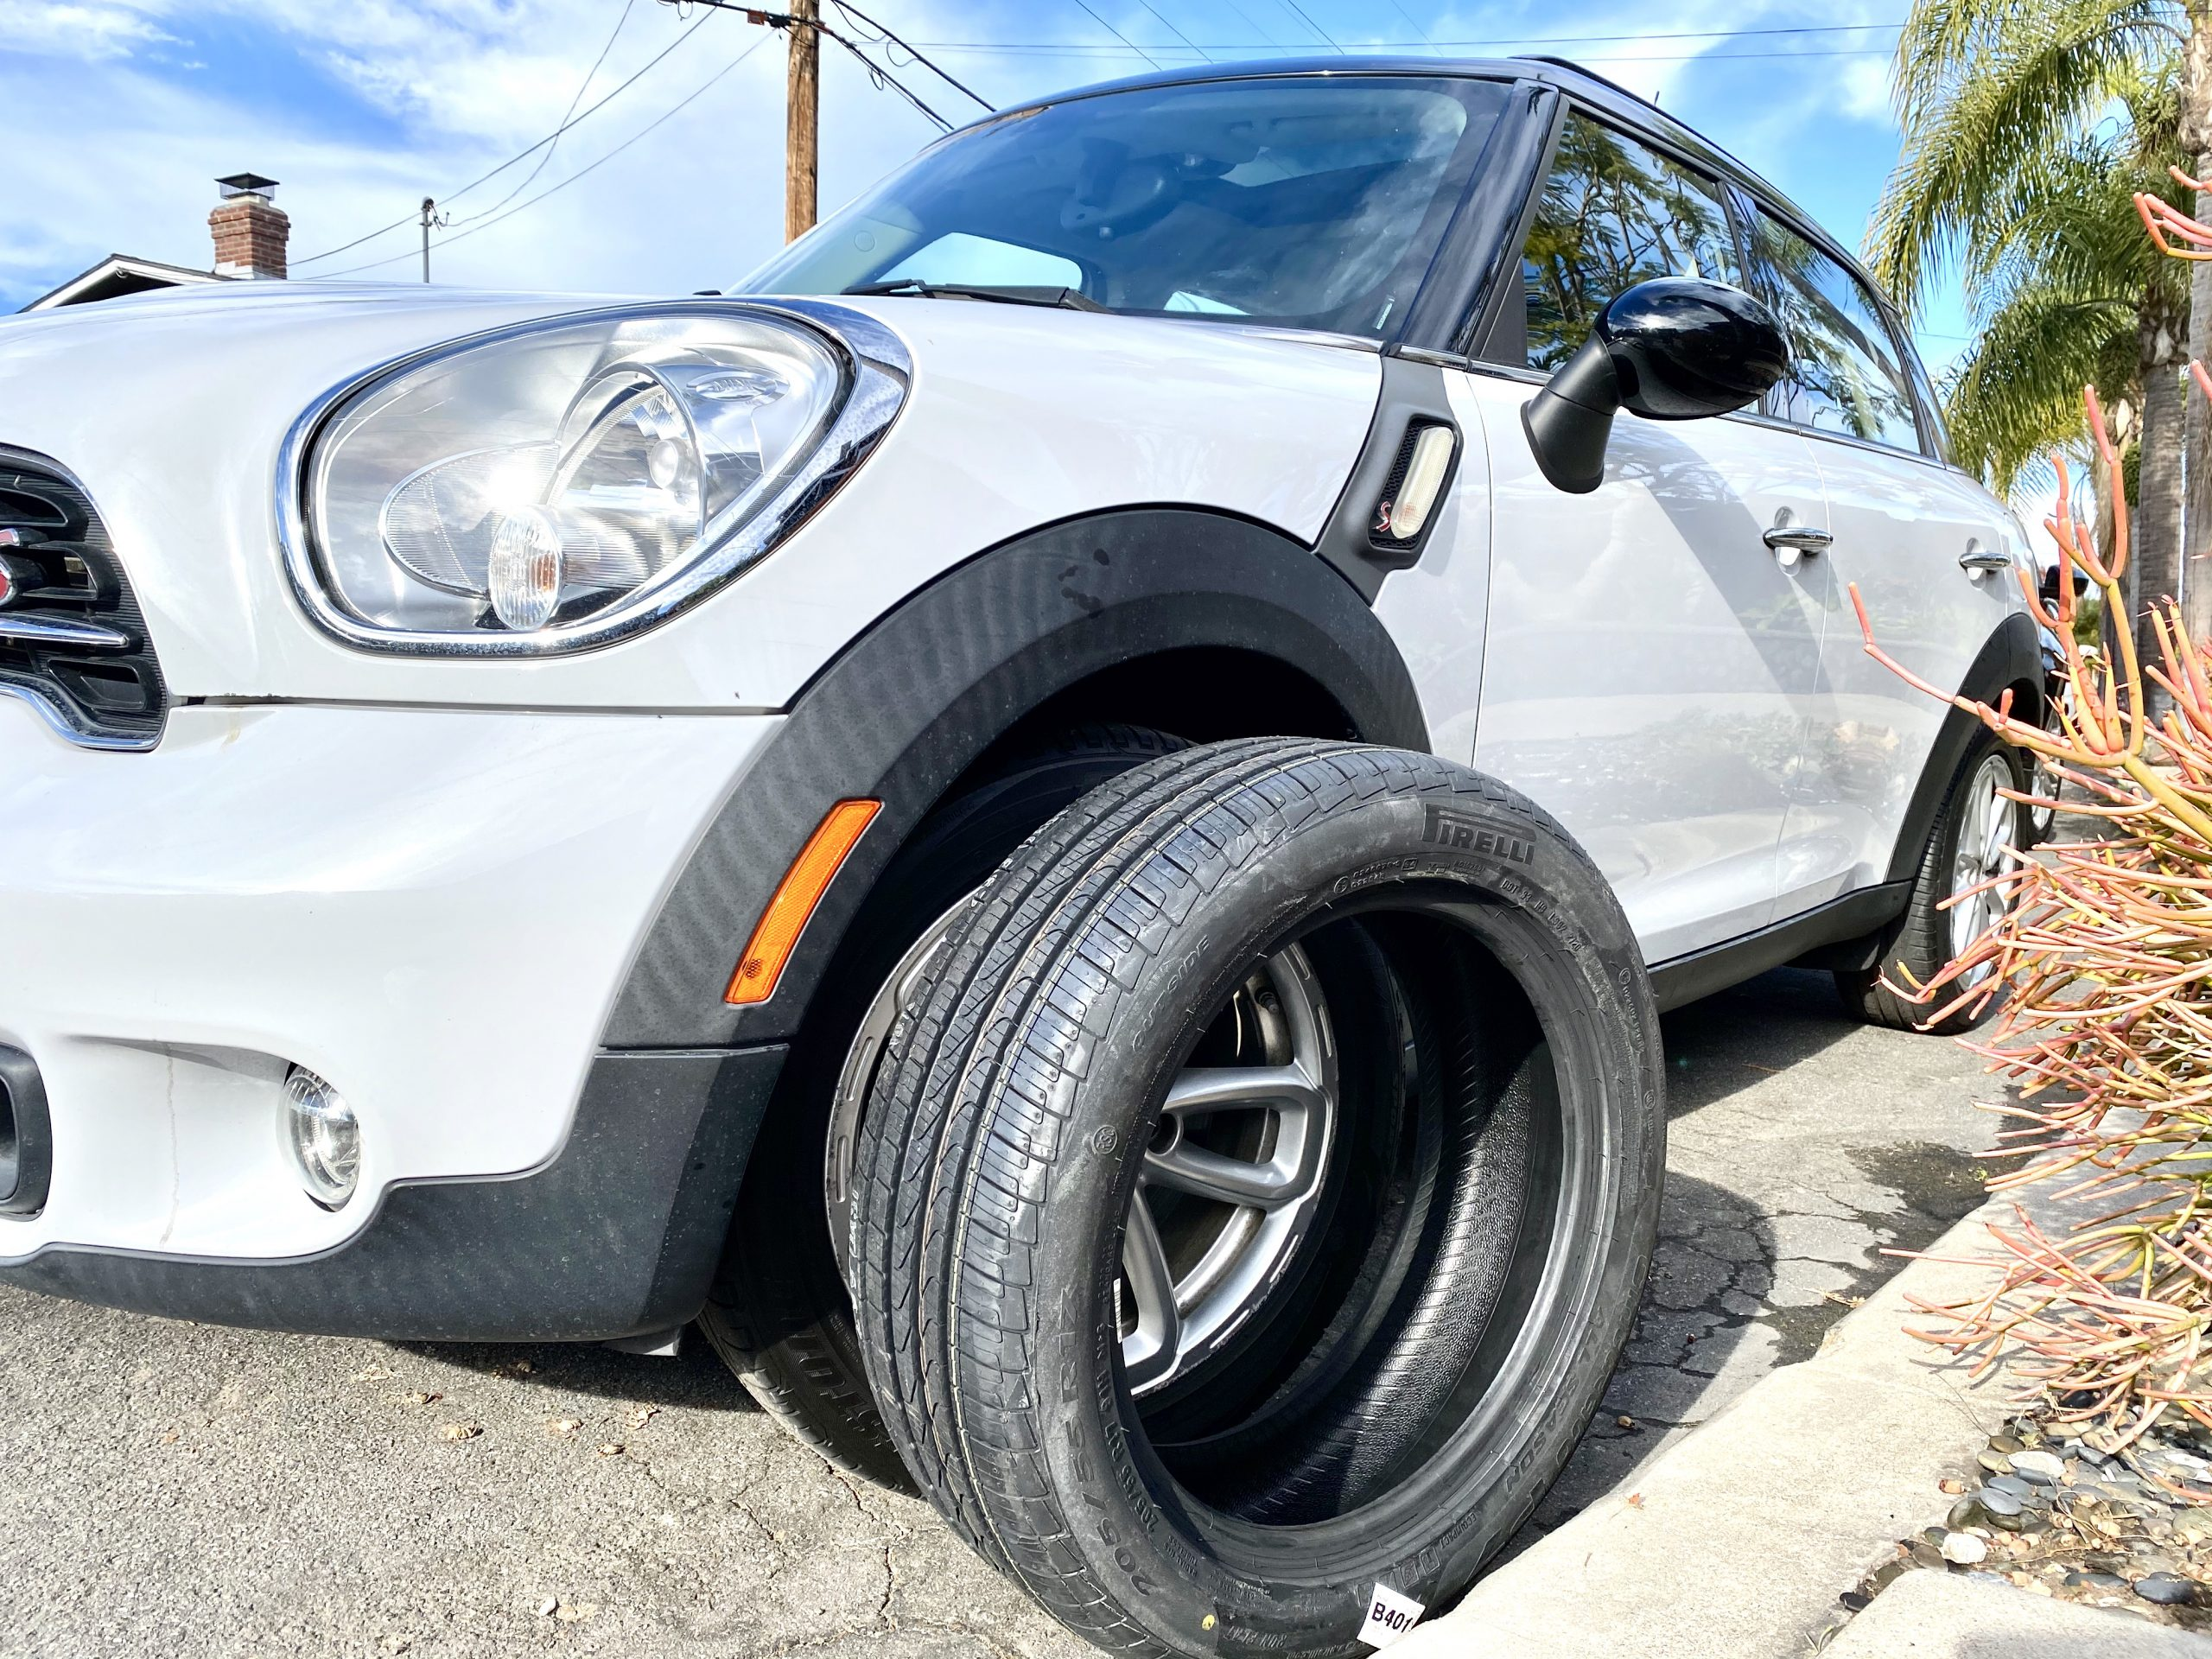 new Pirelli tire in front of old mounted tire on white Mini Cooper Countryman